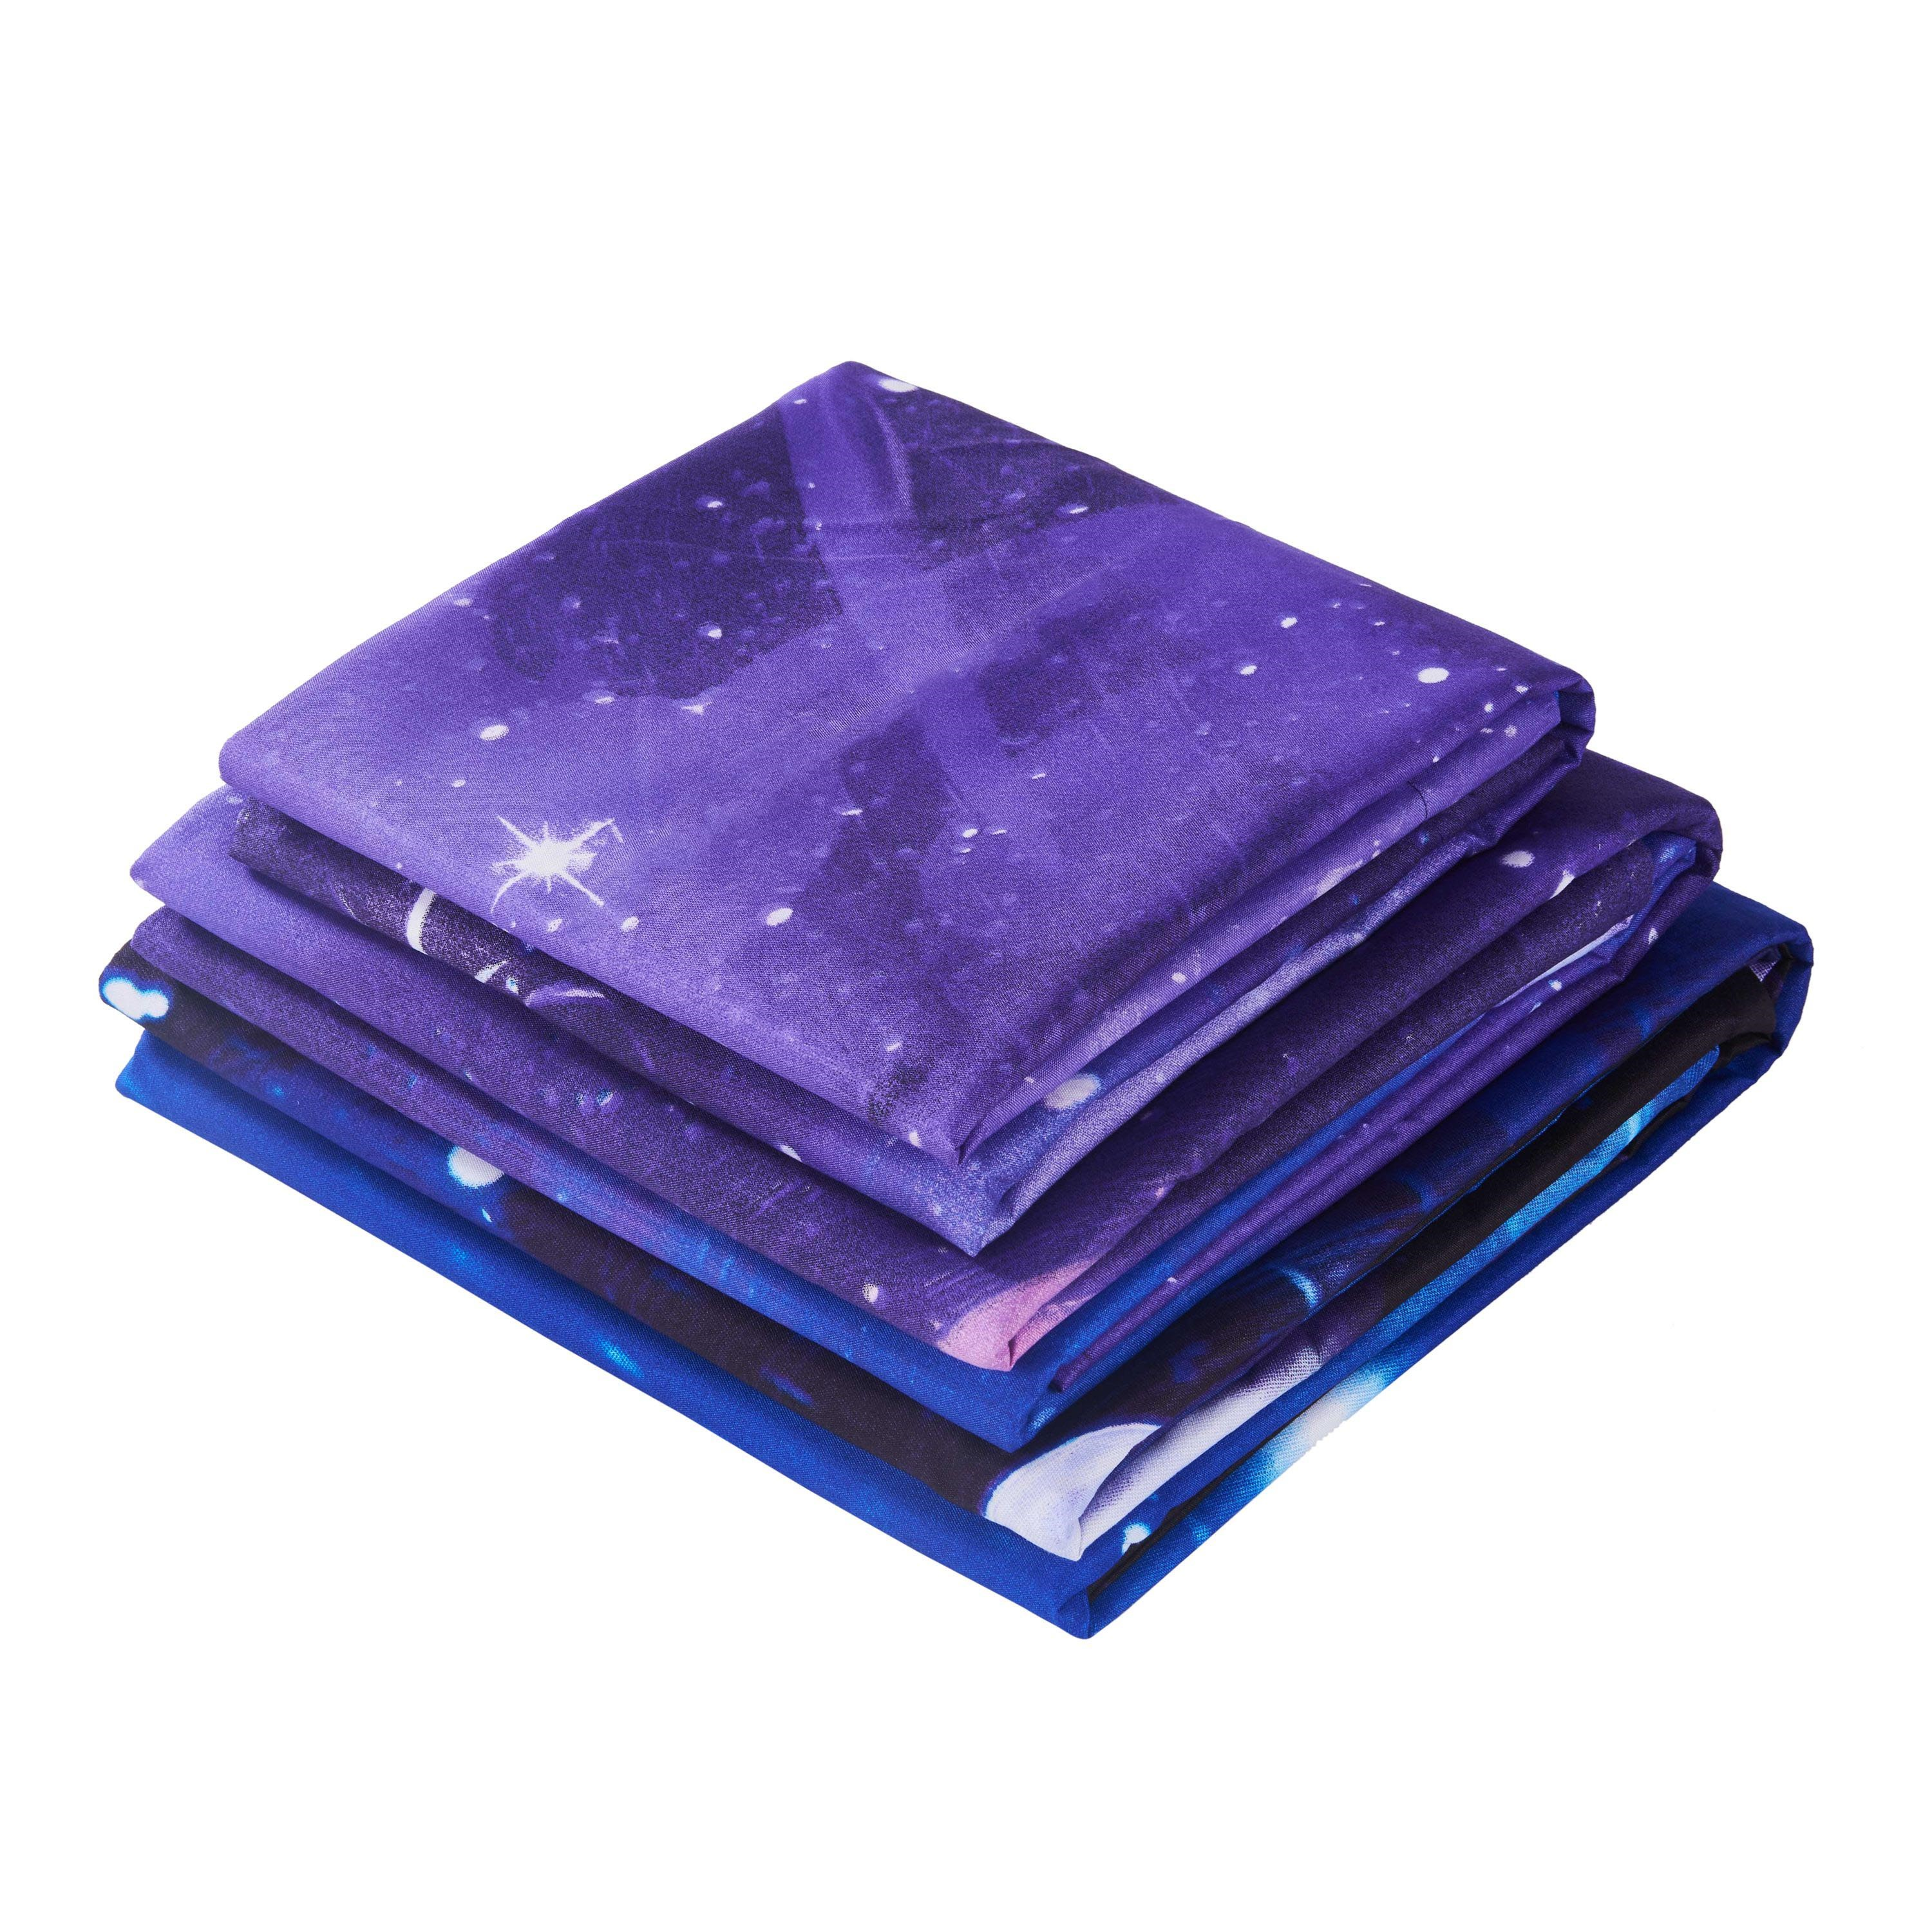 Galaxy and Stars Printed 3D 4-Piece Blue Bedding Sets/Duvet Covers